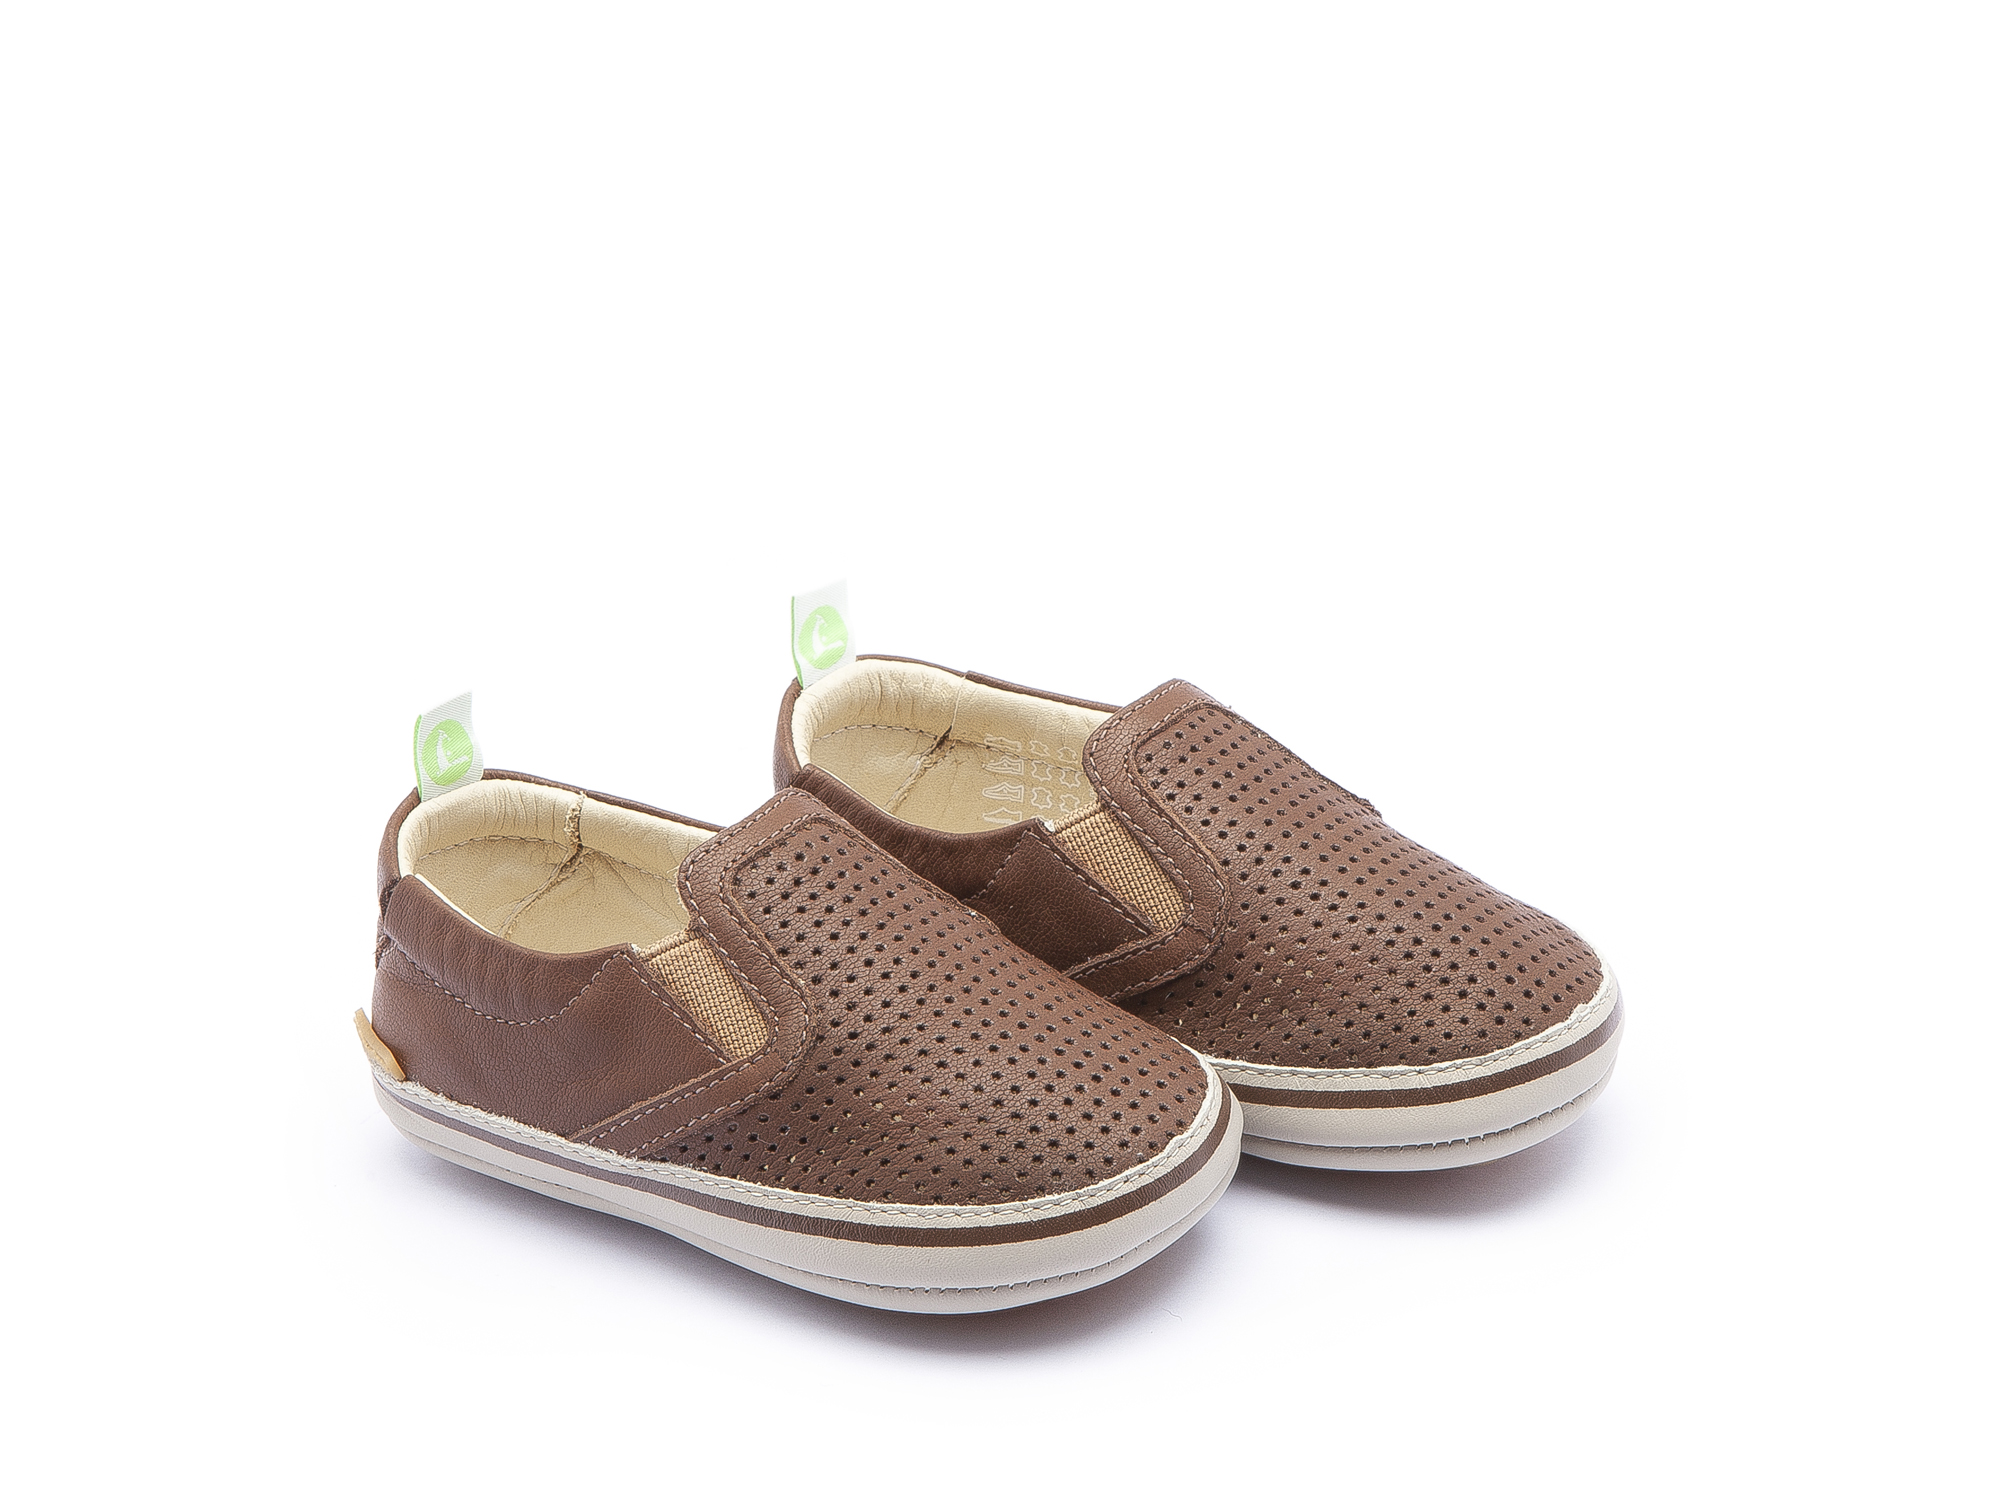 Sneaker Casual Woody Old Brown Holes/ Old Brown Baby 0 à 2 anos - 0